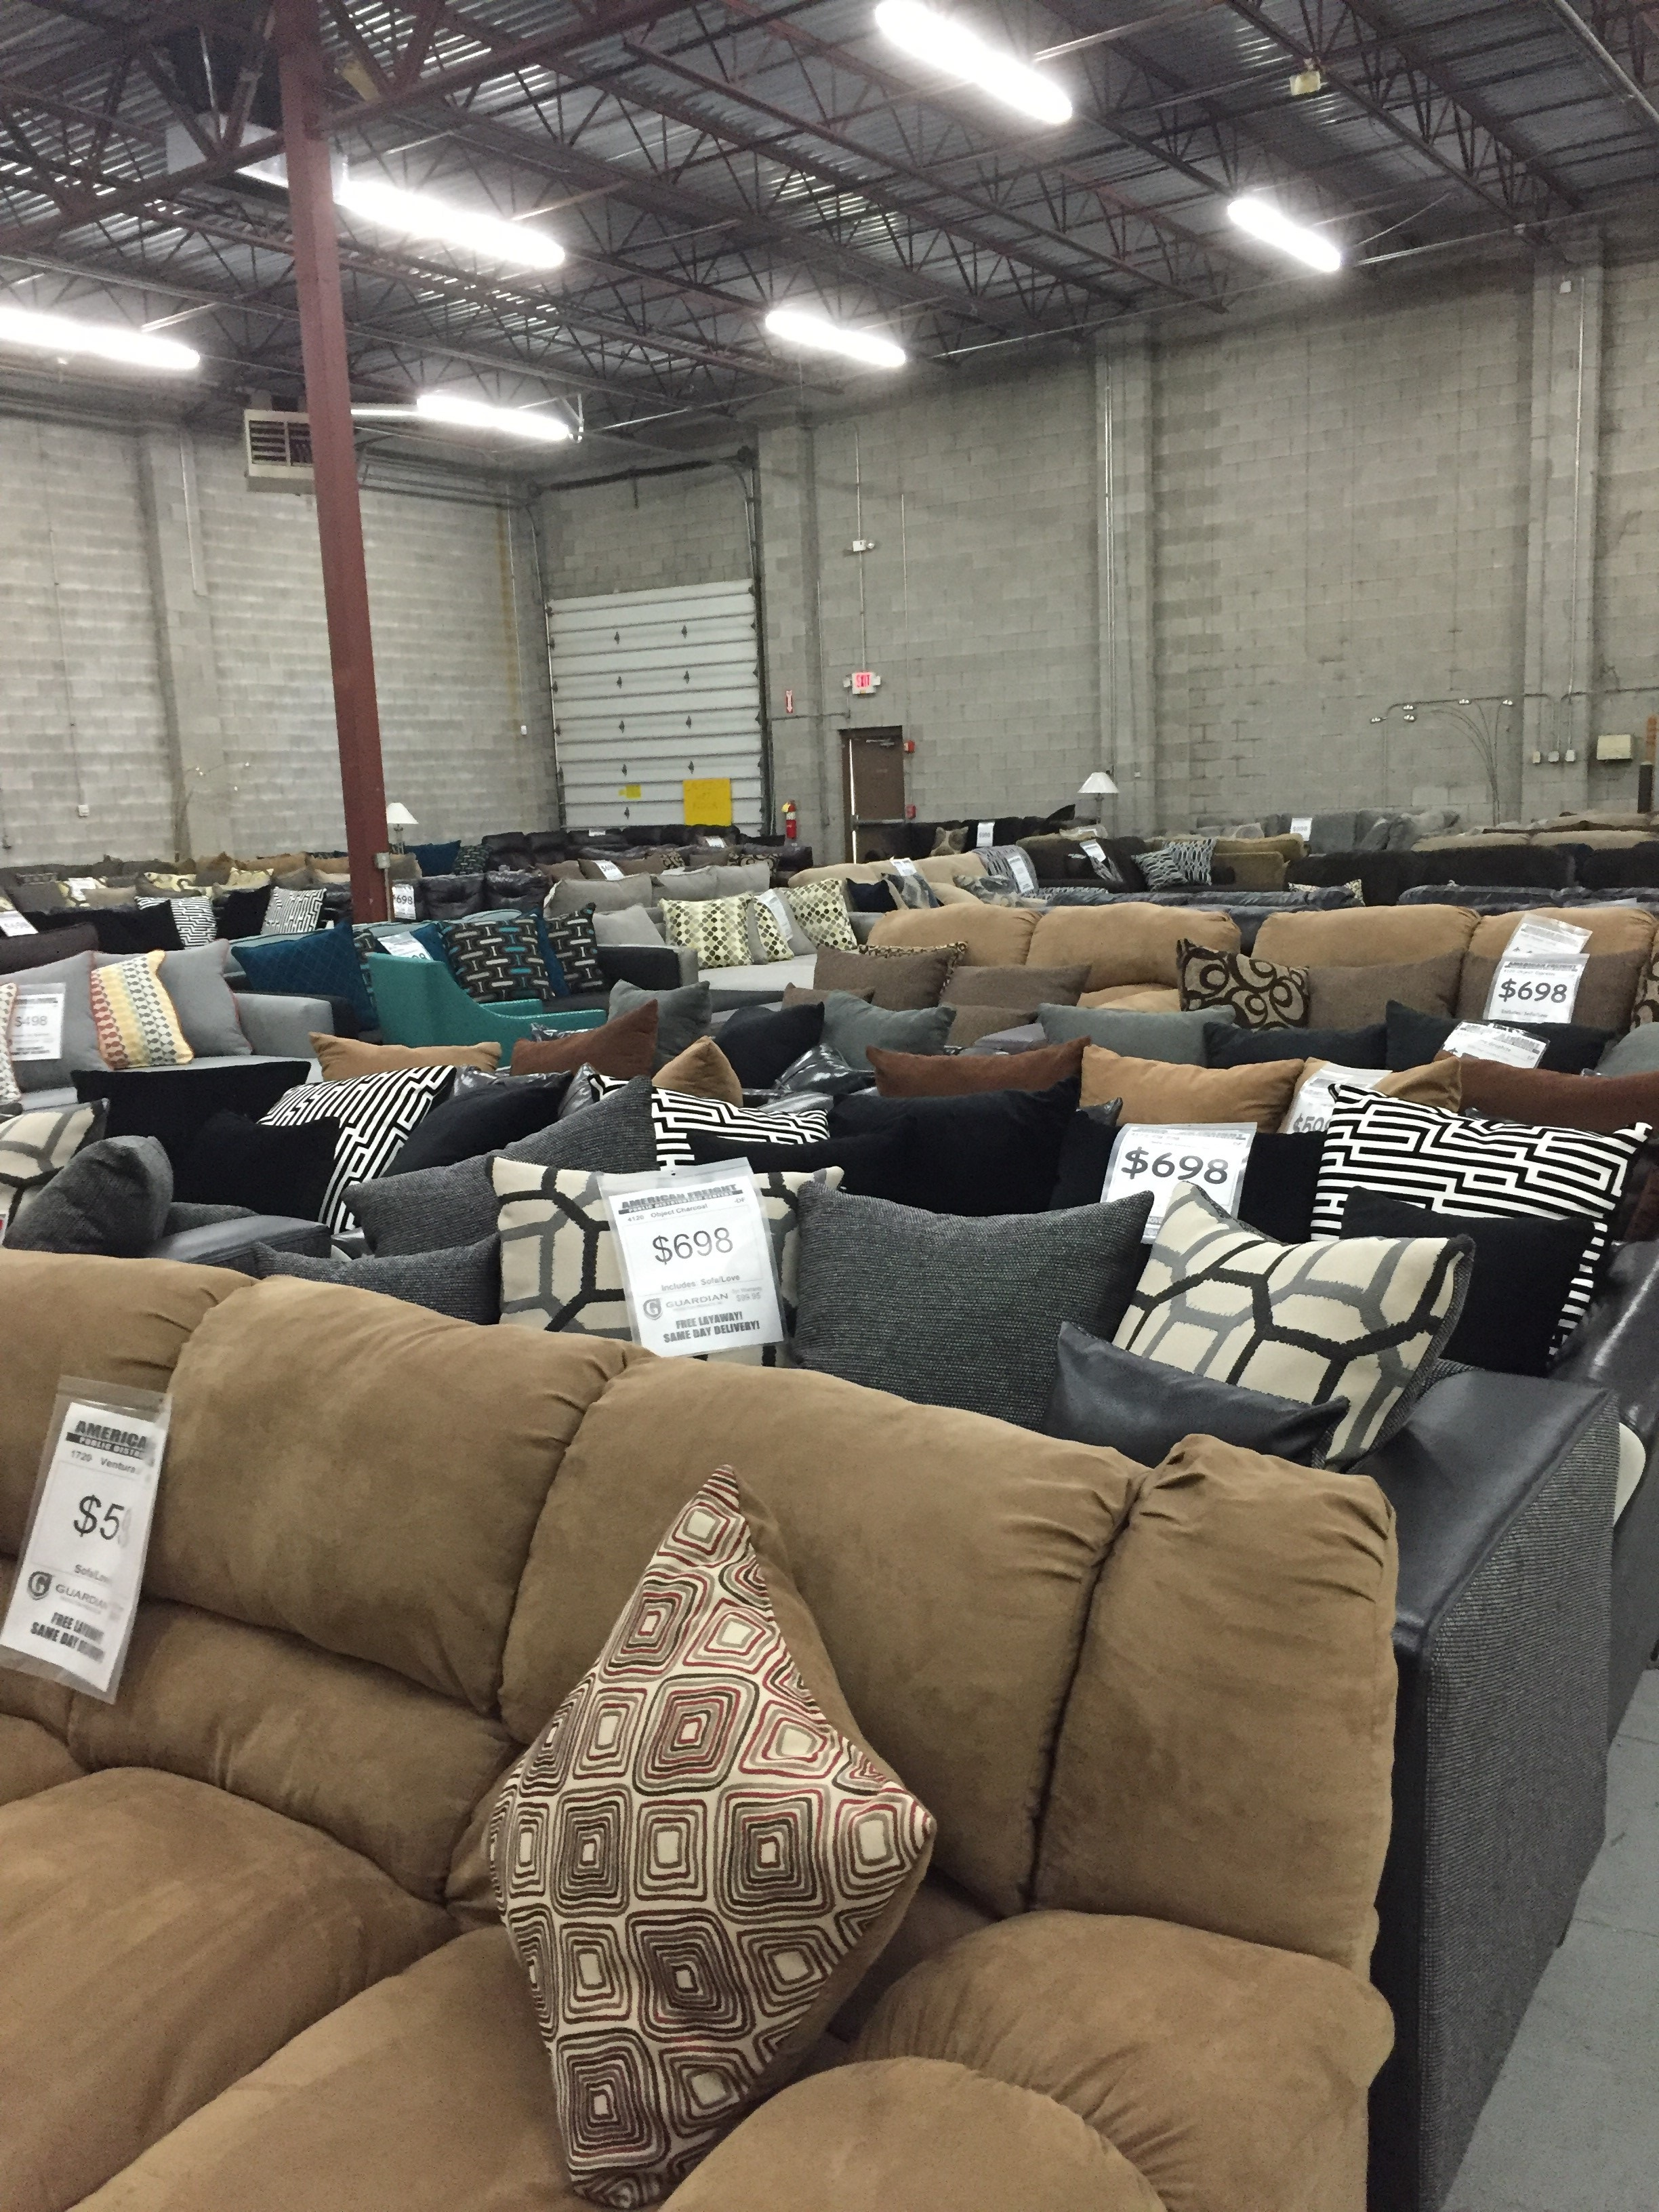 American freight furniture and mattress in columbus oh for American freight furniture and mattress massillon oh